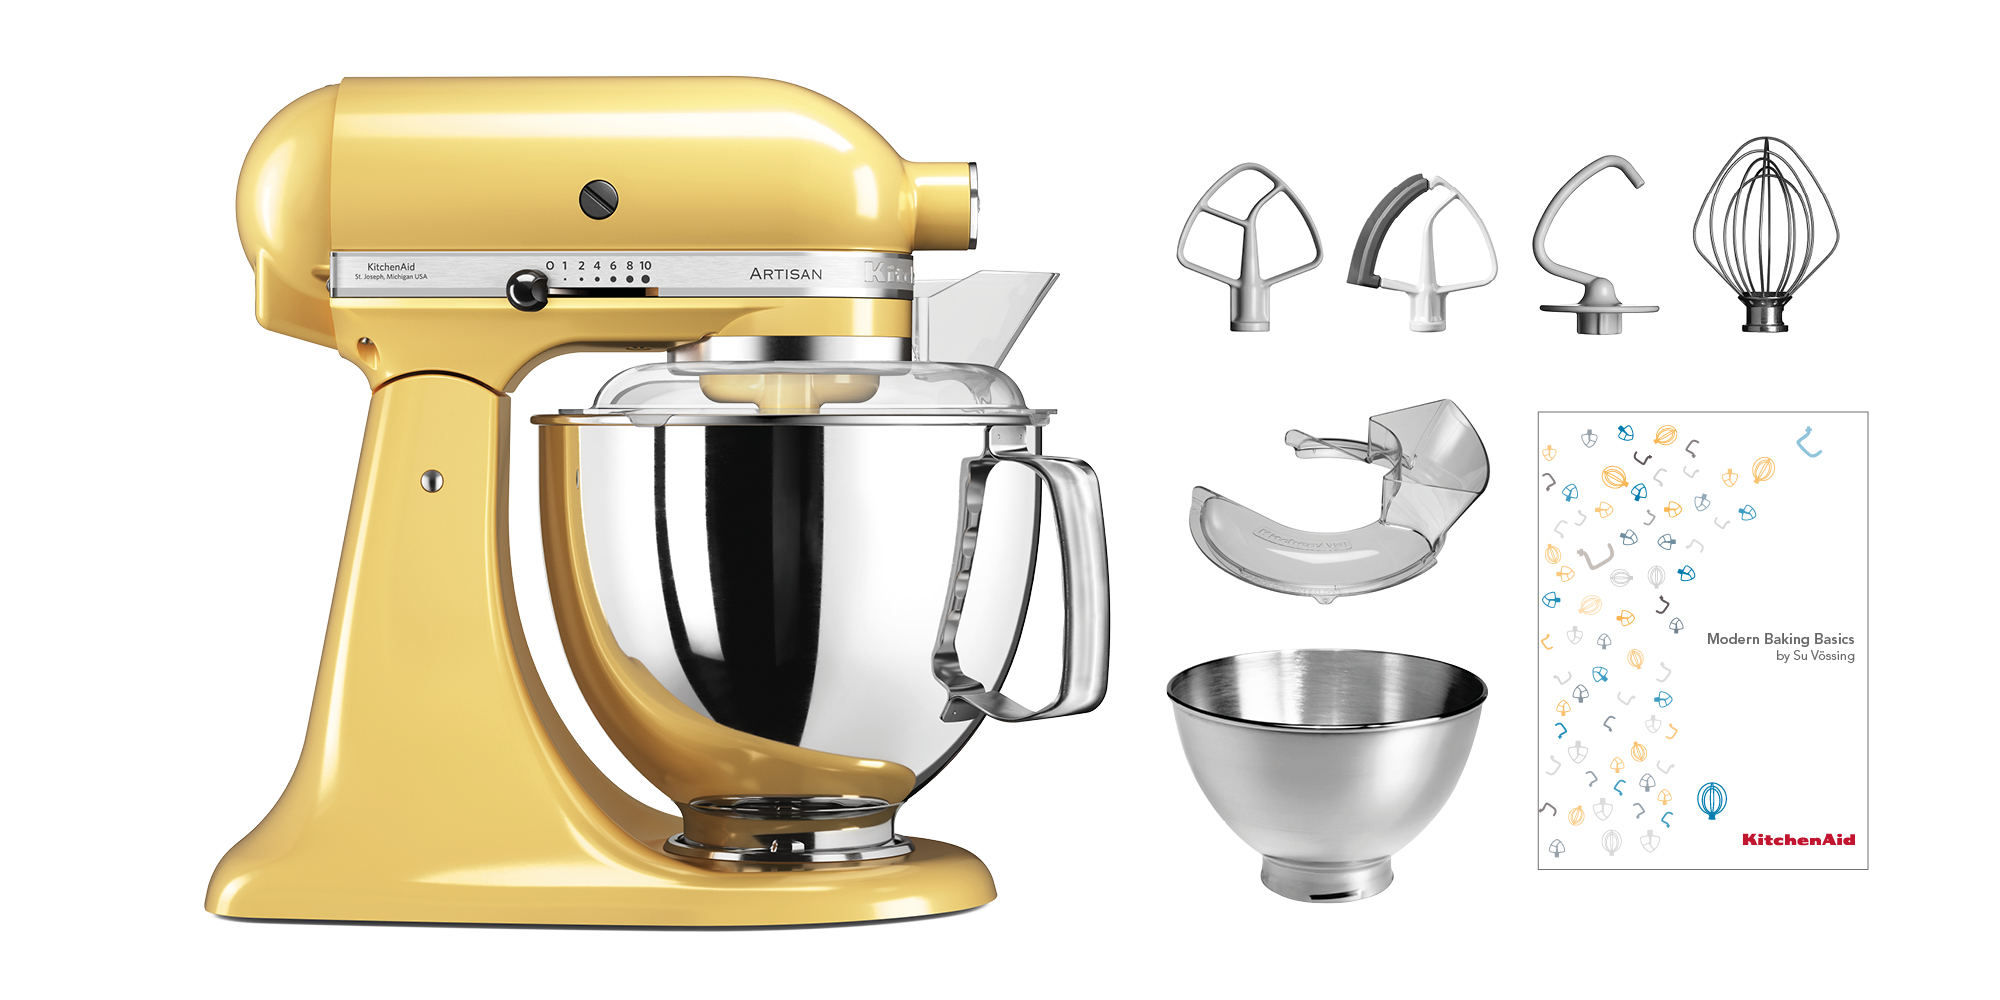 KitchenAid Küchenmaschine KSM200 Swiss Edition